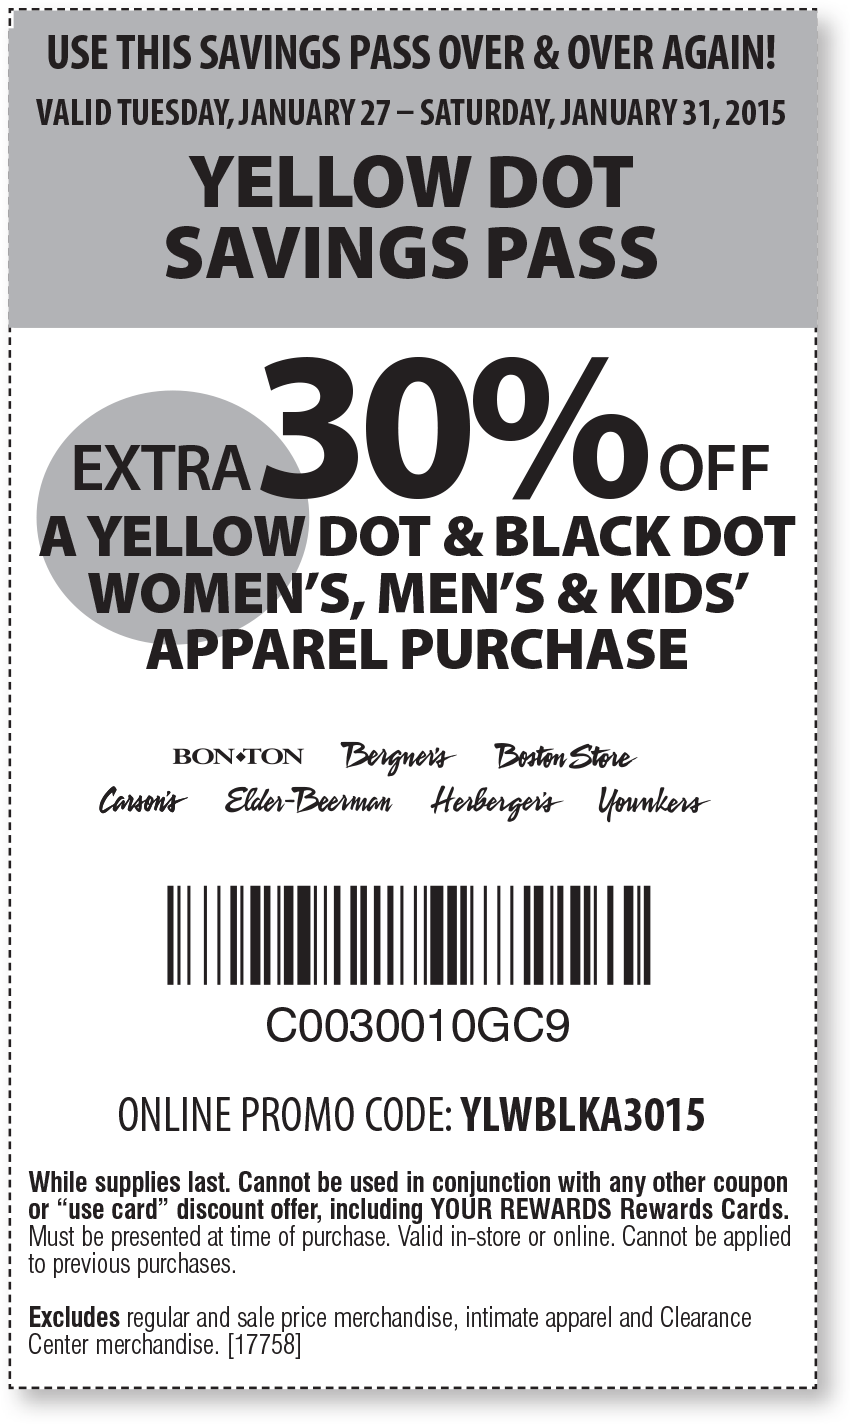 Bon Ton Coupon November 2018 Extra 30% off clearance at Bon Ton, Carsons & sister stores, or online via promo YLWBLKA3015